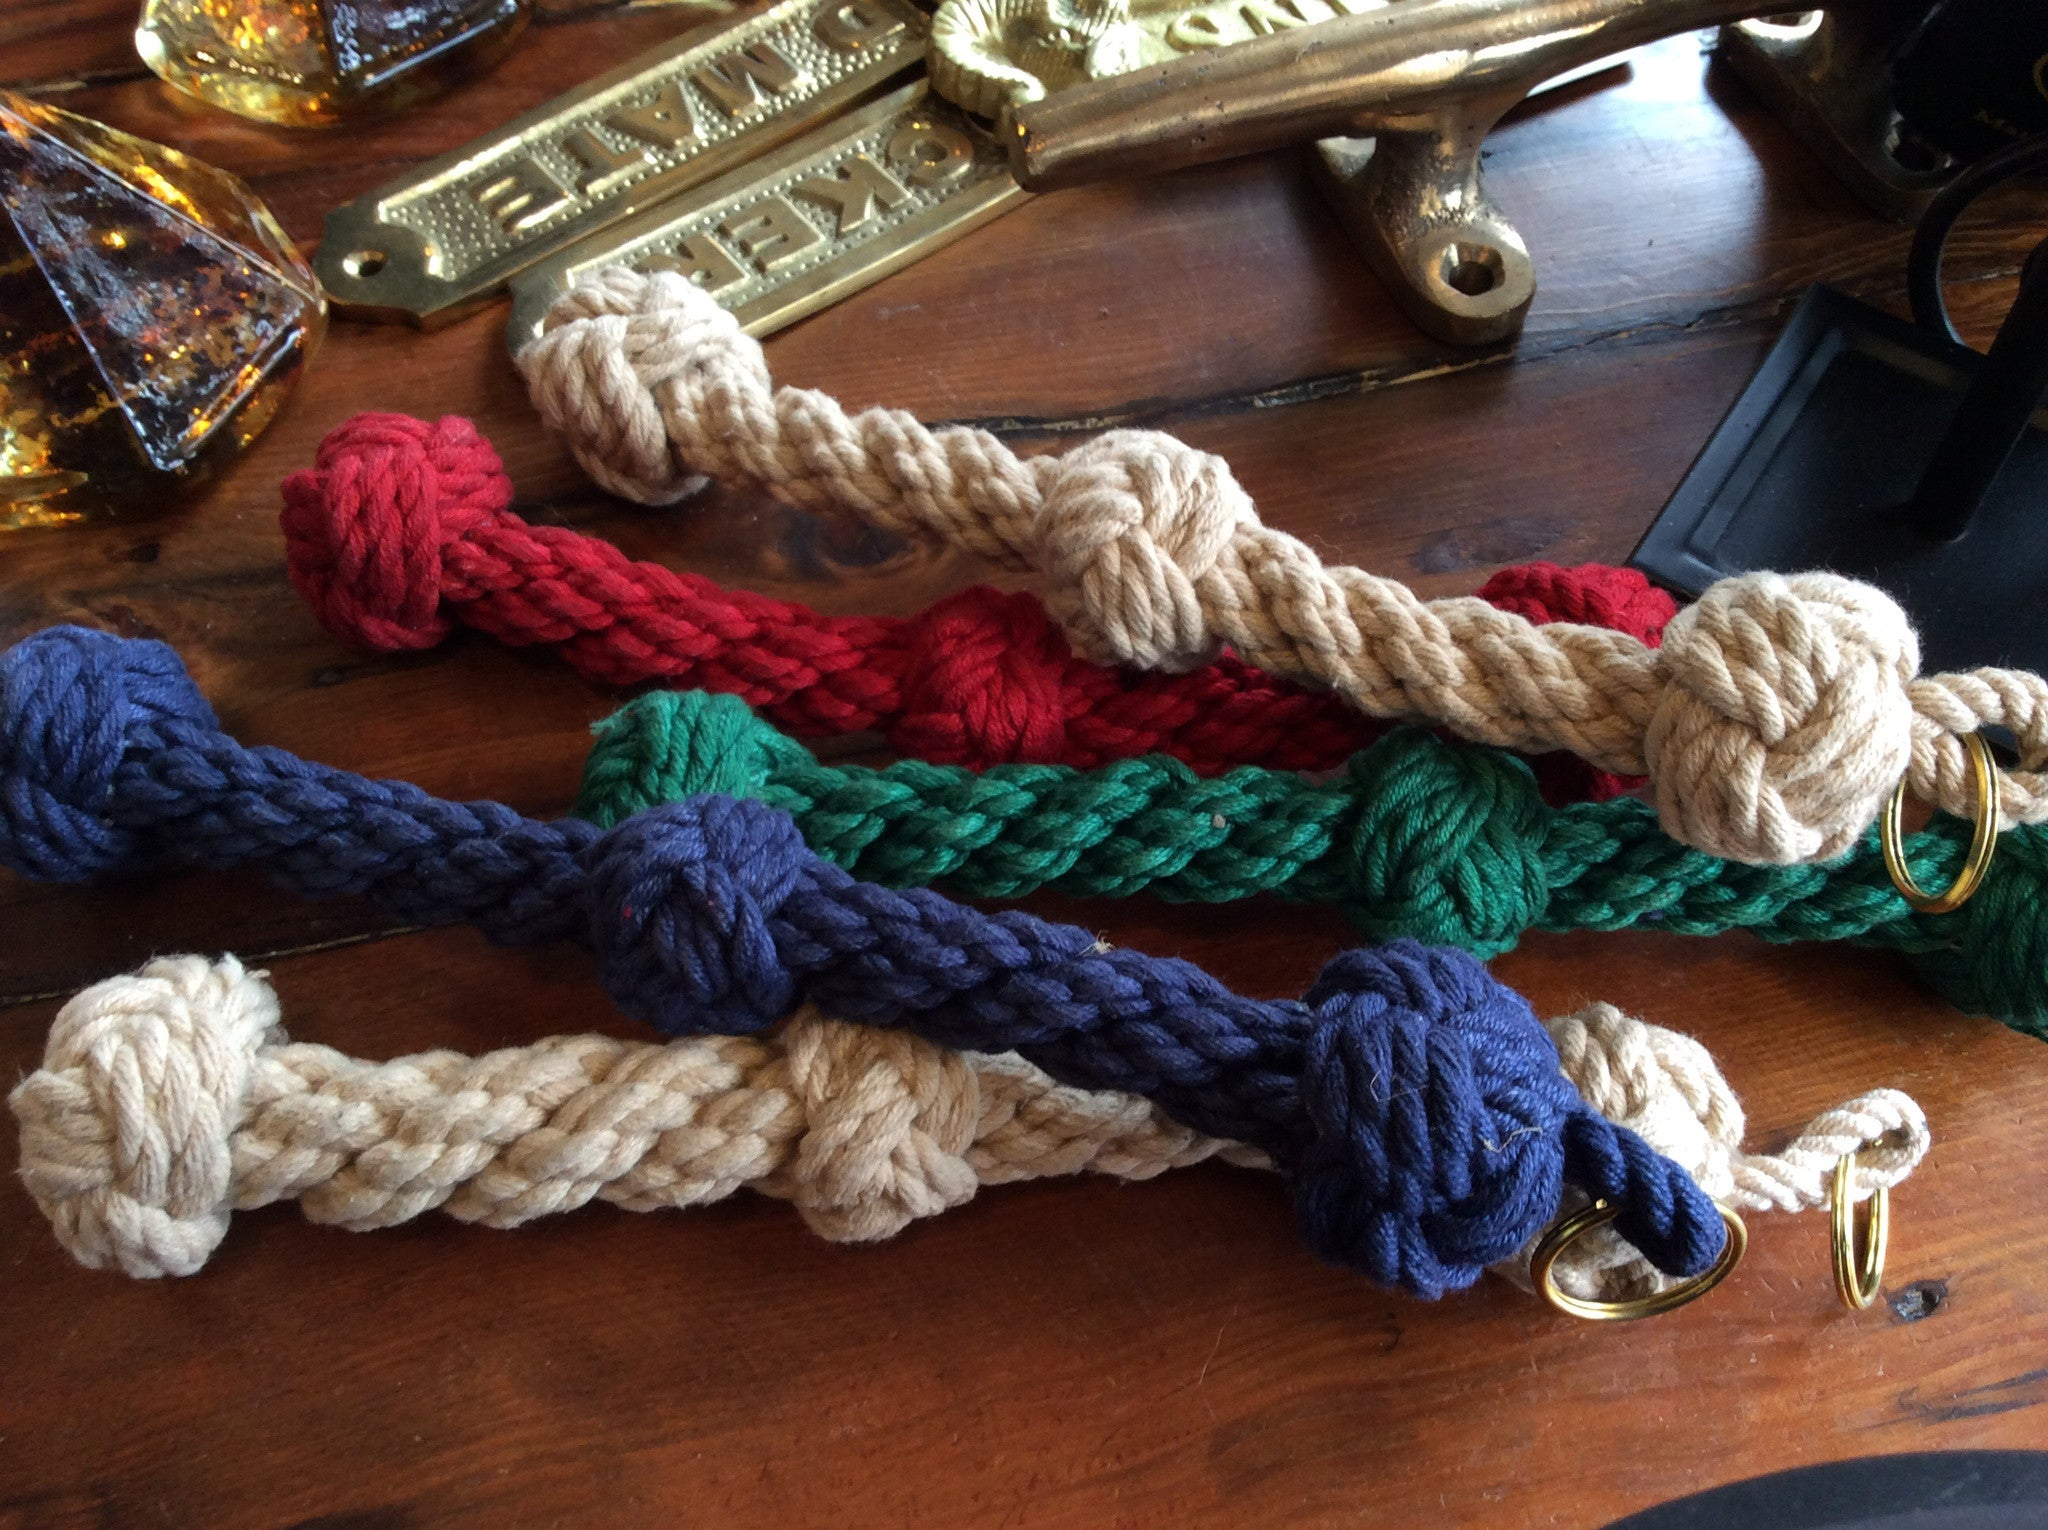 pull, ship's bell, three turk knots - Annapolis Maritime Antiques